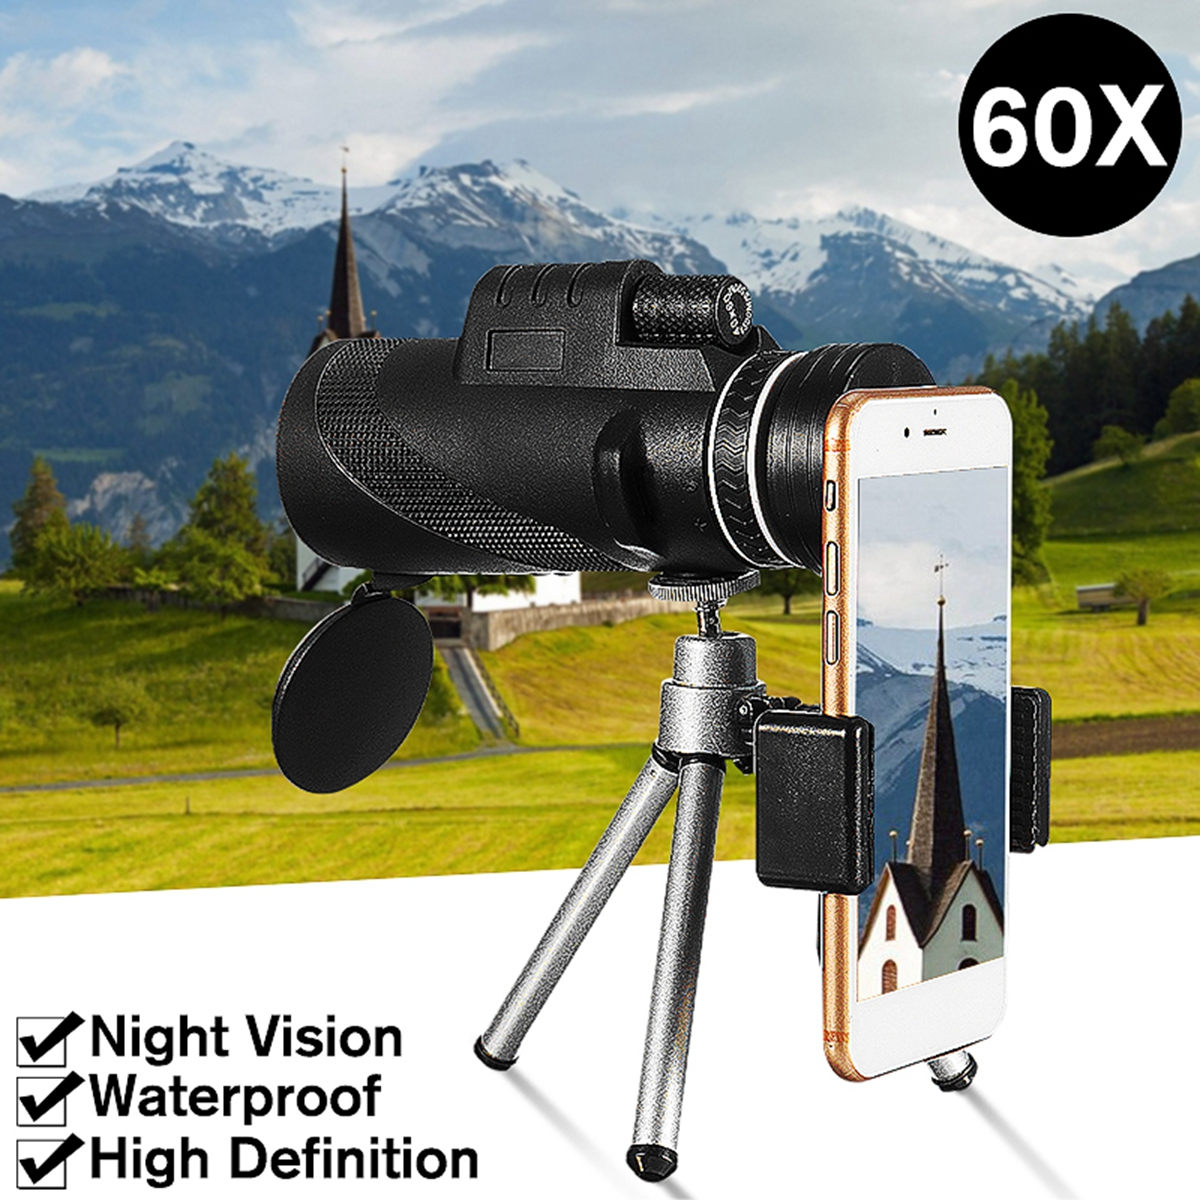 Waterproof 9500m 40X60 Portable Compact Day Night Vision Monocular Optical HD Lens Phone Telescope + Tripod Clip For Concert,Ball game.Aquarium,Zoo Outdoor Sporting